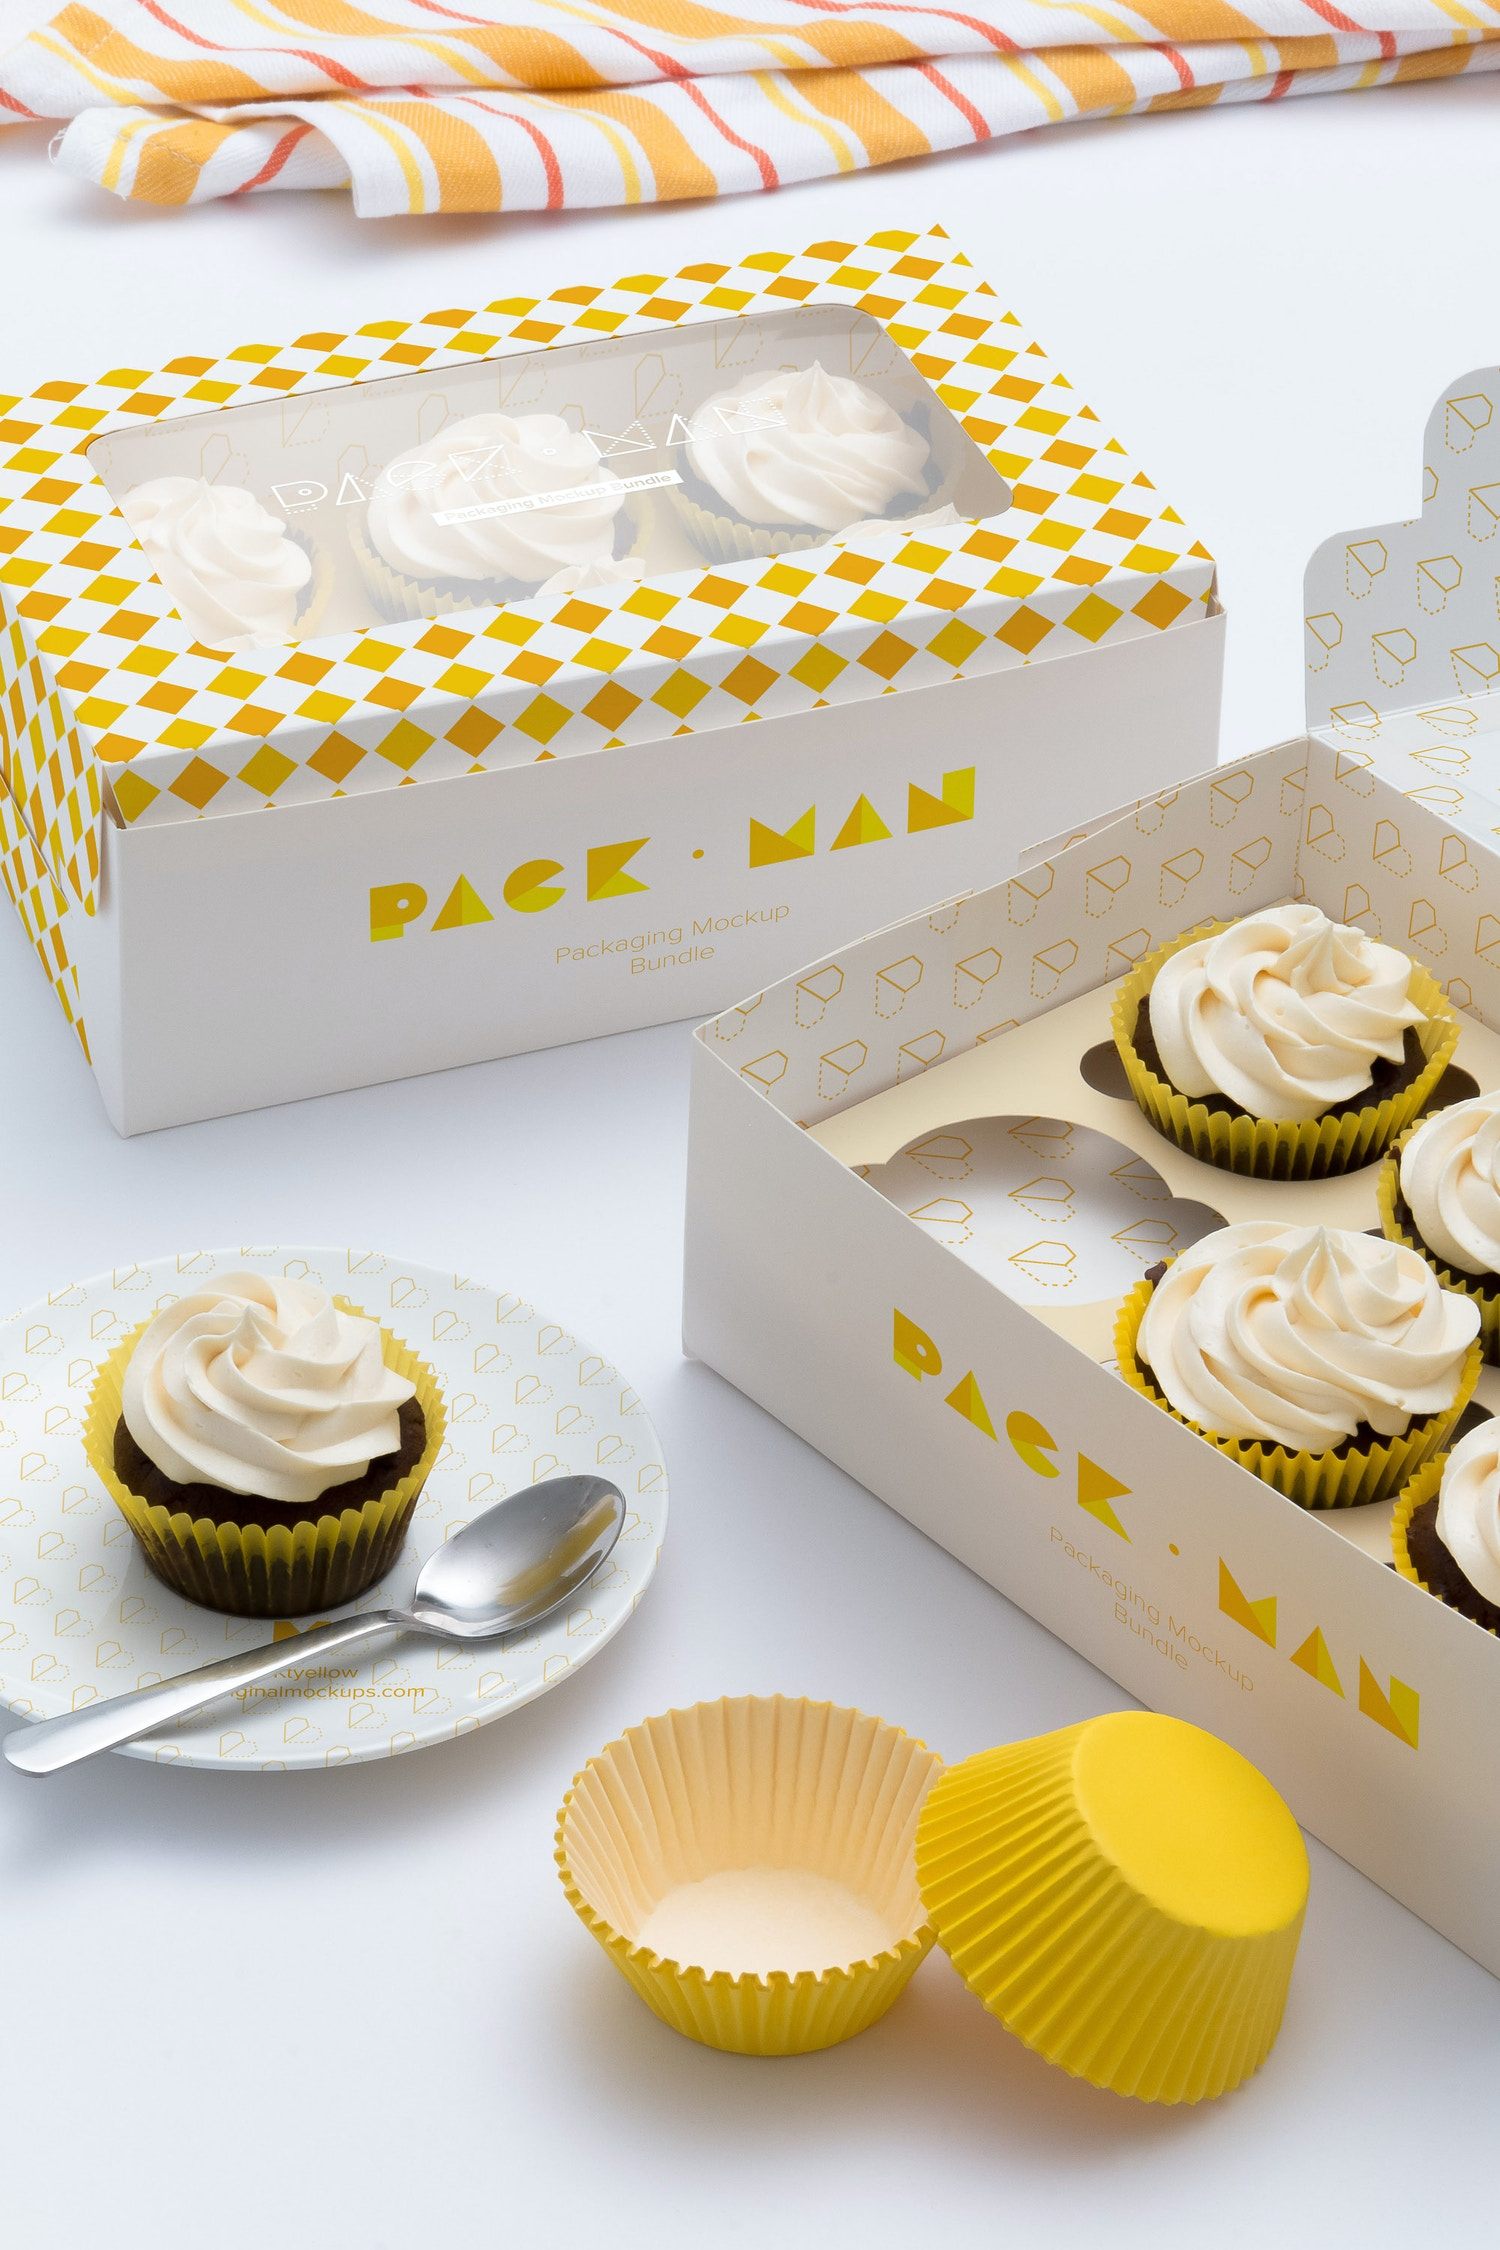 Six Cupcake Box Mockup 05 by Ktyellow  on Original Mockups